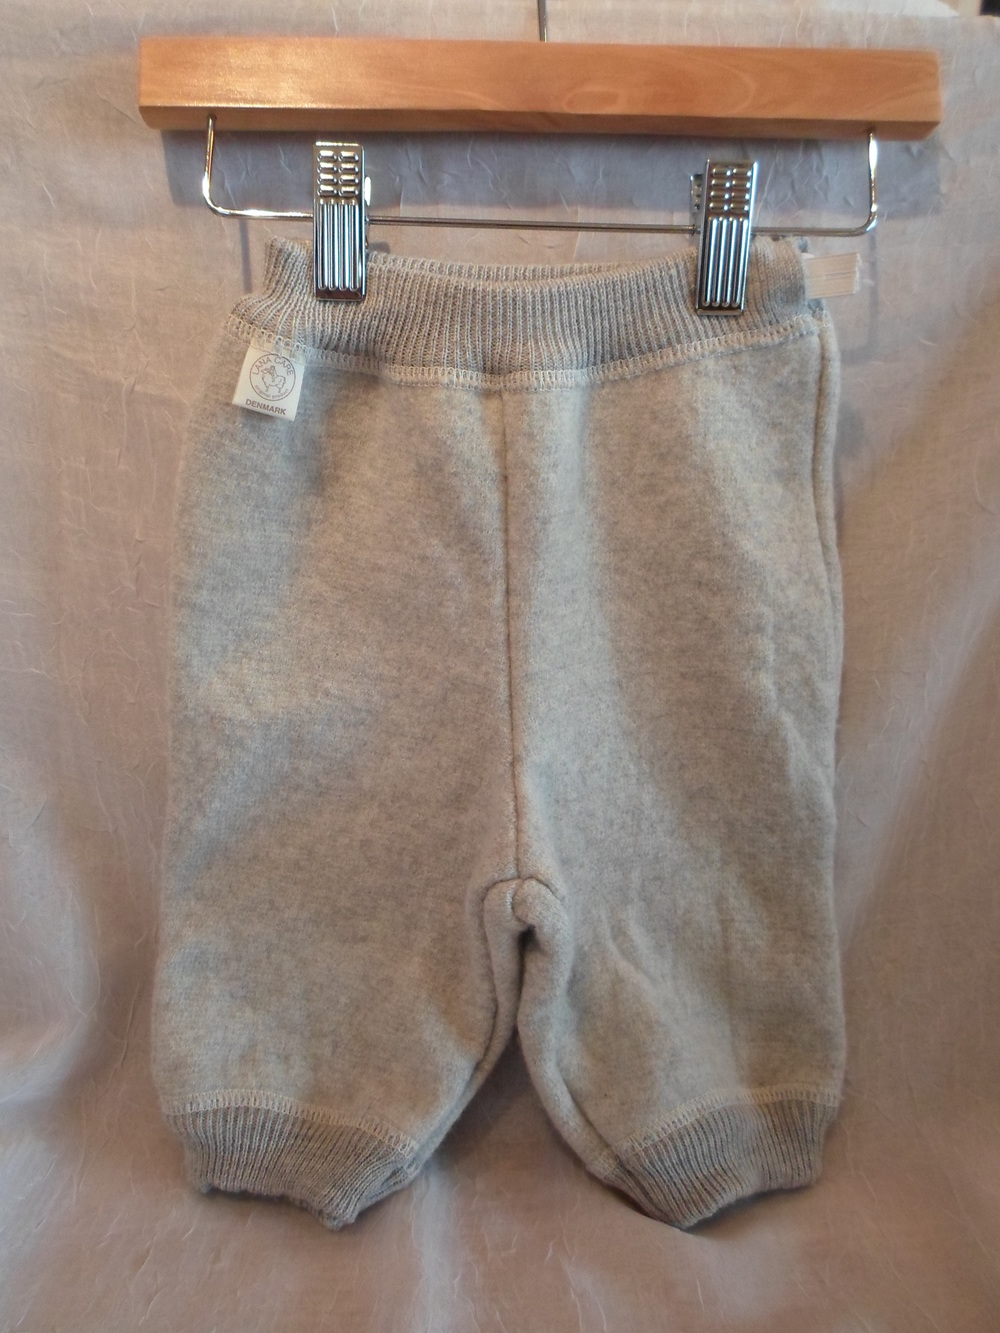 LanaCare Wool Pants size 0-3 in Soft Grey $58 Wants 1 - PURCHASED